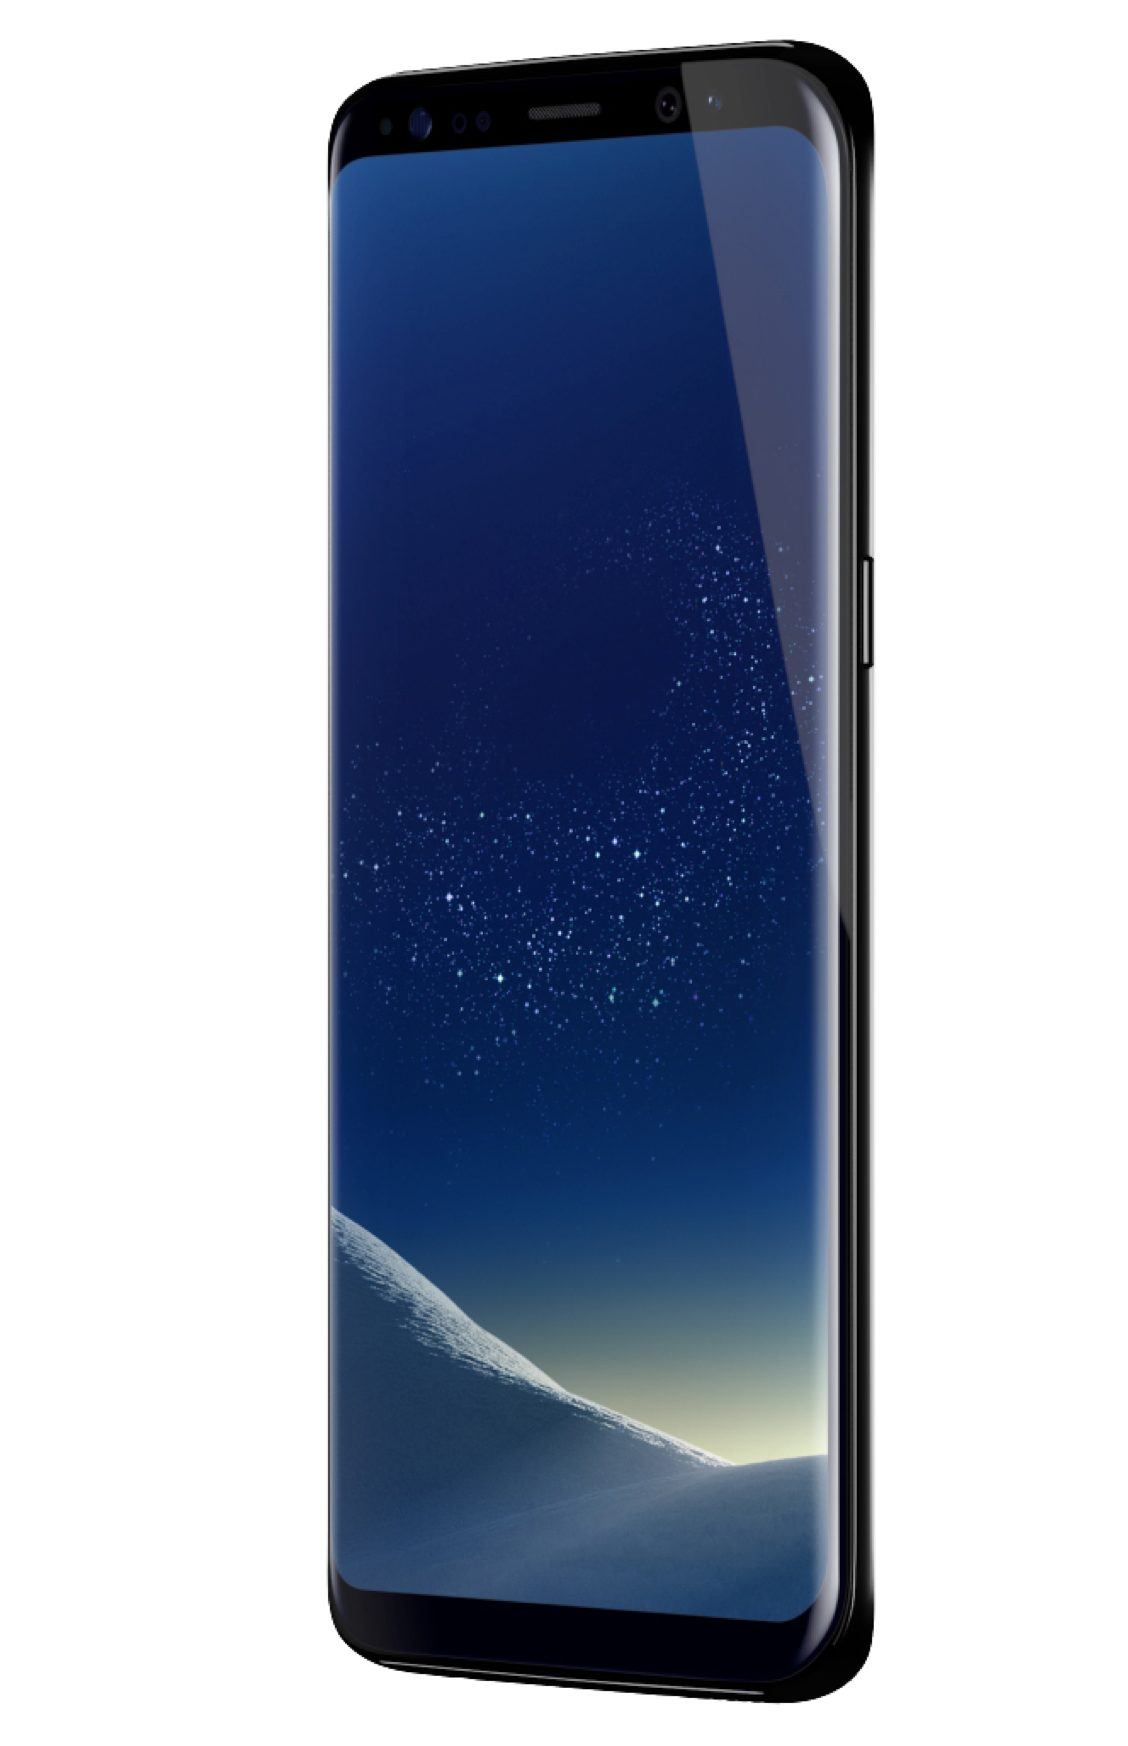 Galaxy S8 Pre-Owned, 64GB, Midnight Black, Boost Mobile